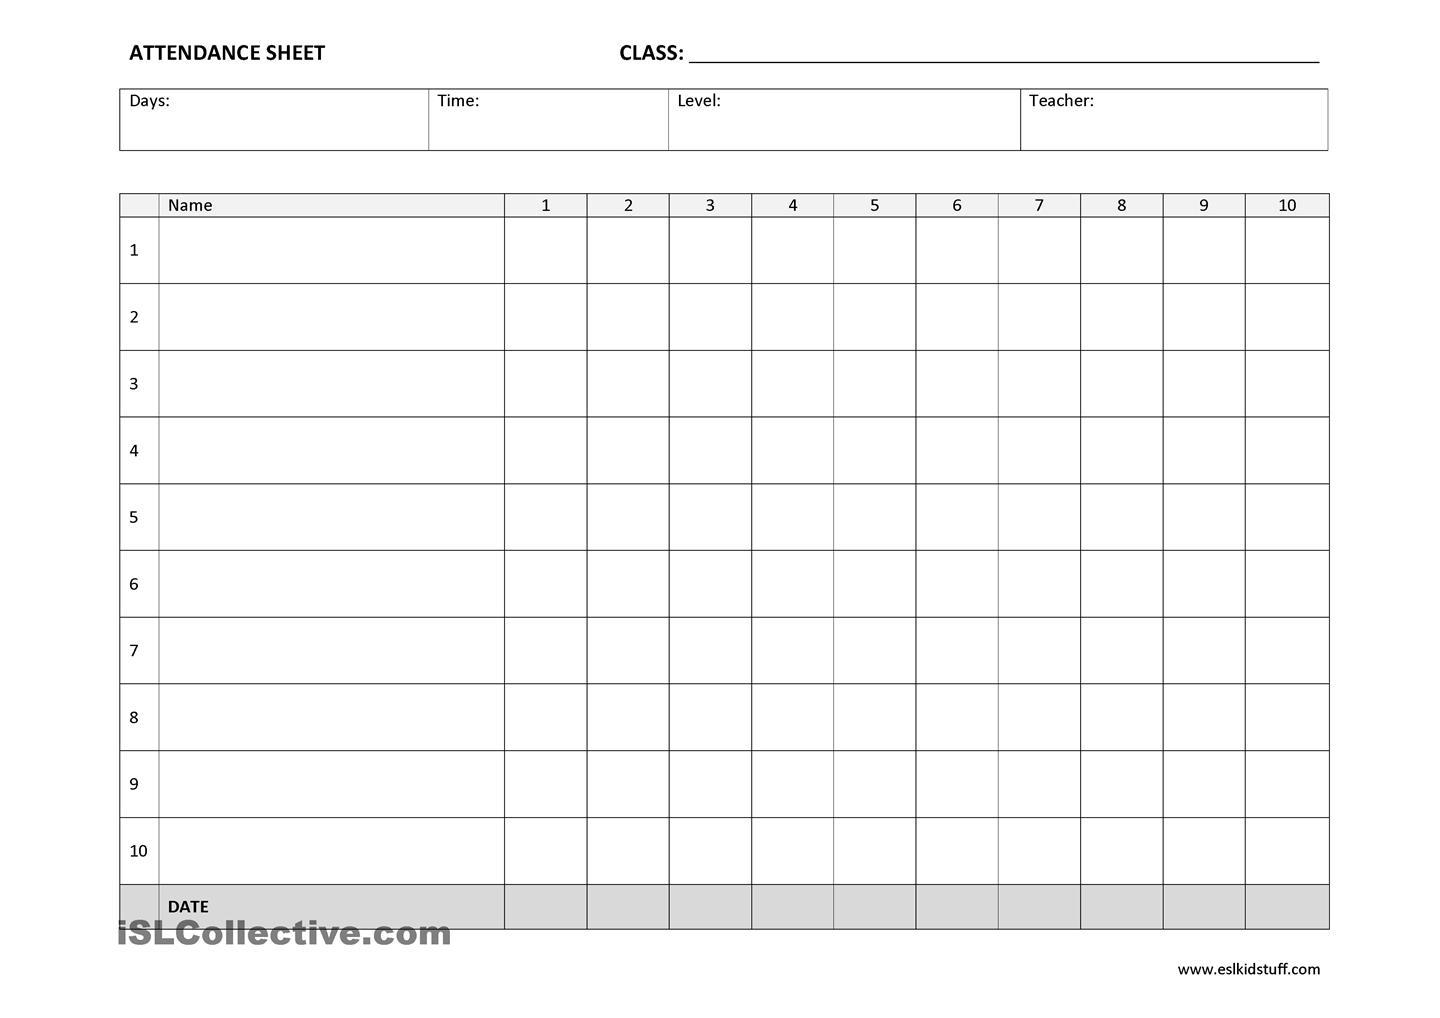 Attendance Sheet Templates on Blank Workbook